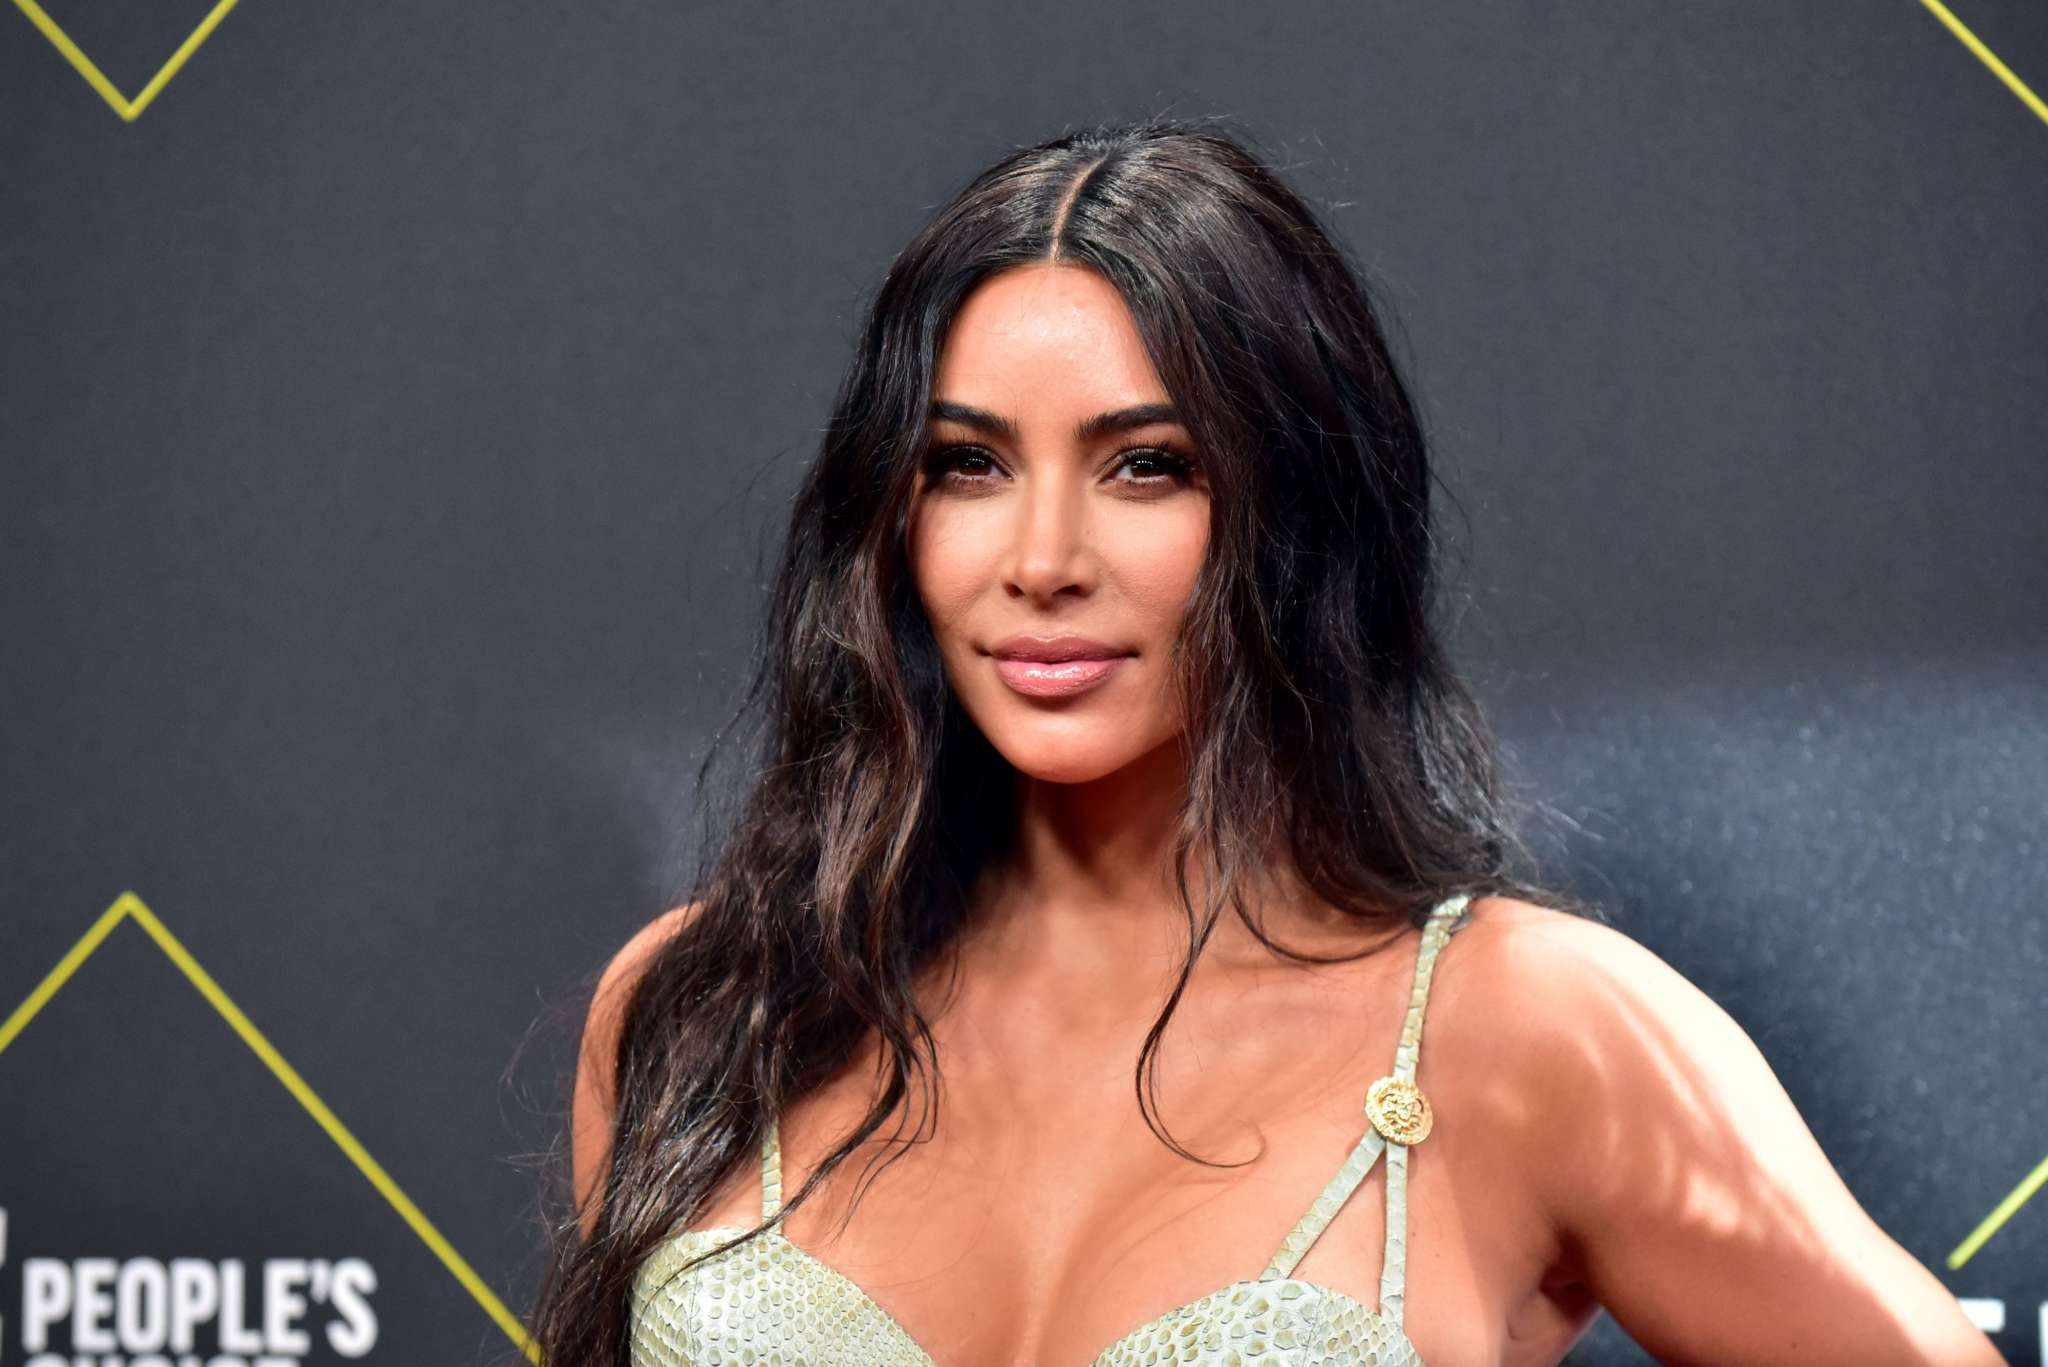 Kim Kardashian joins North West on TikTok with adorable dancing video